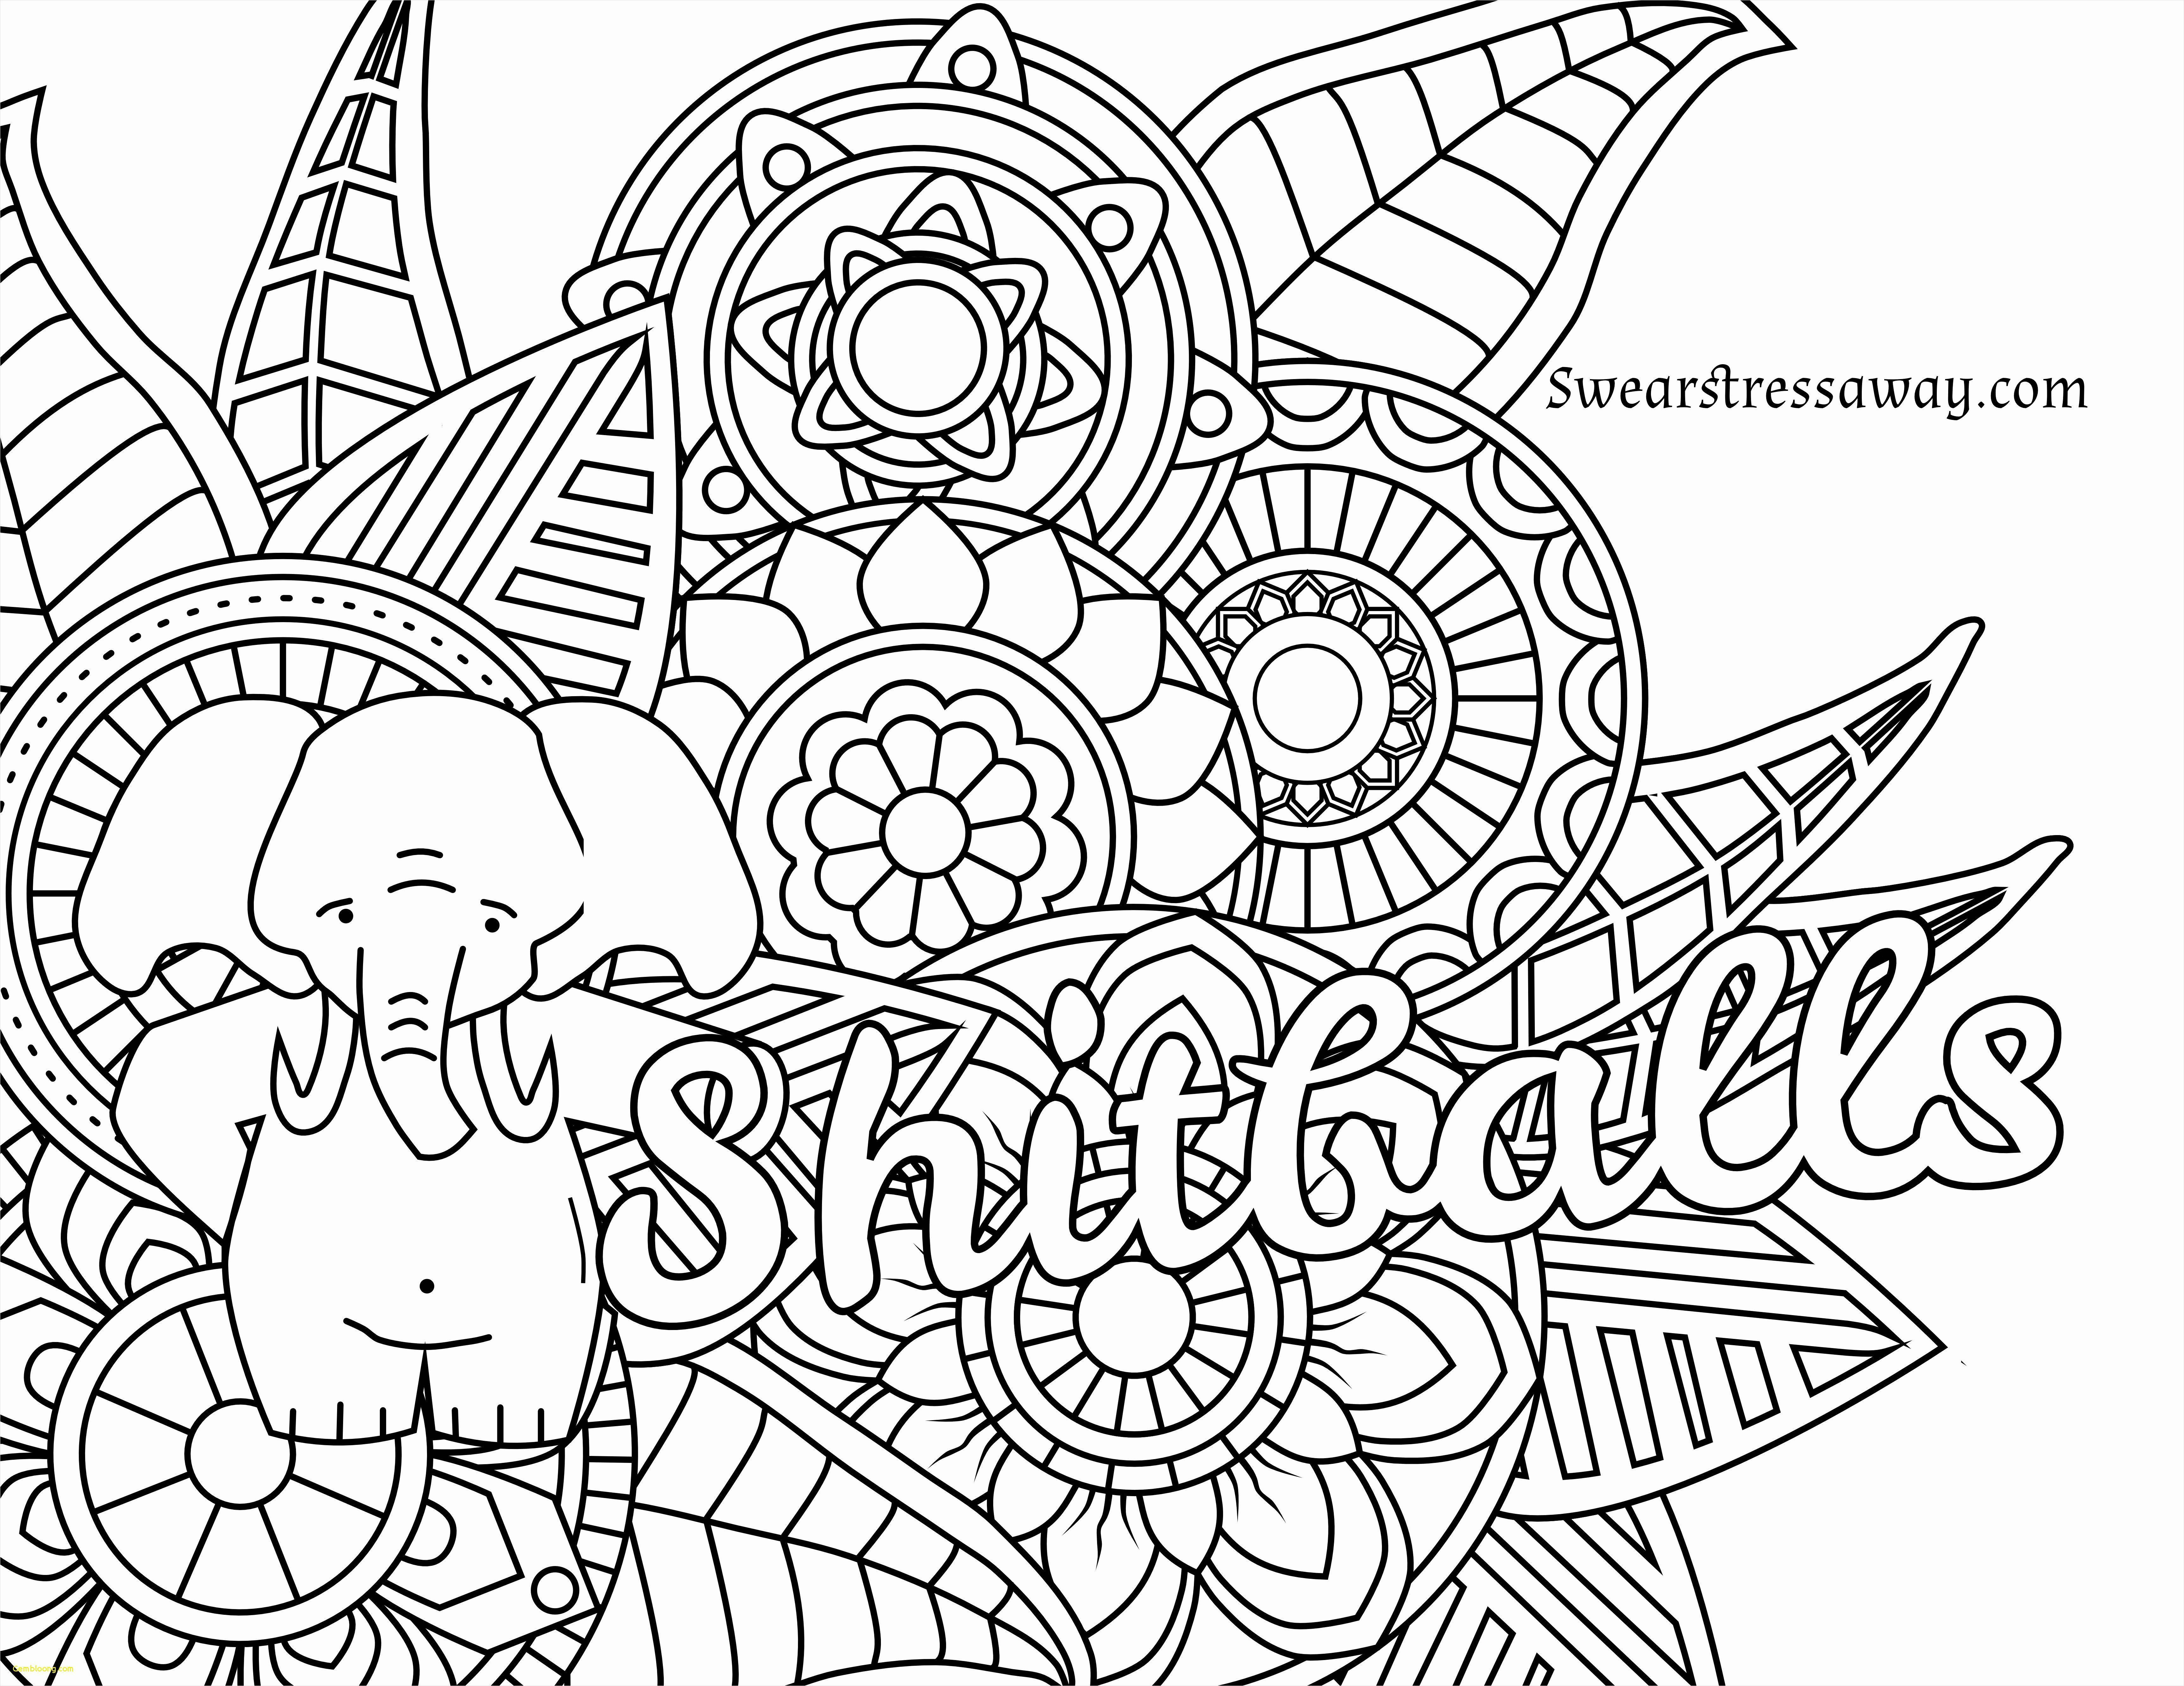 New Adult Coloring Pages Swear Words | Jvzooreview - Free Printable Coloring Pages For Adults Swear Words